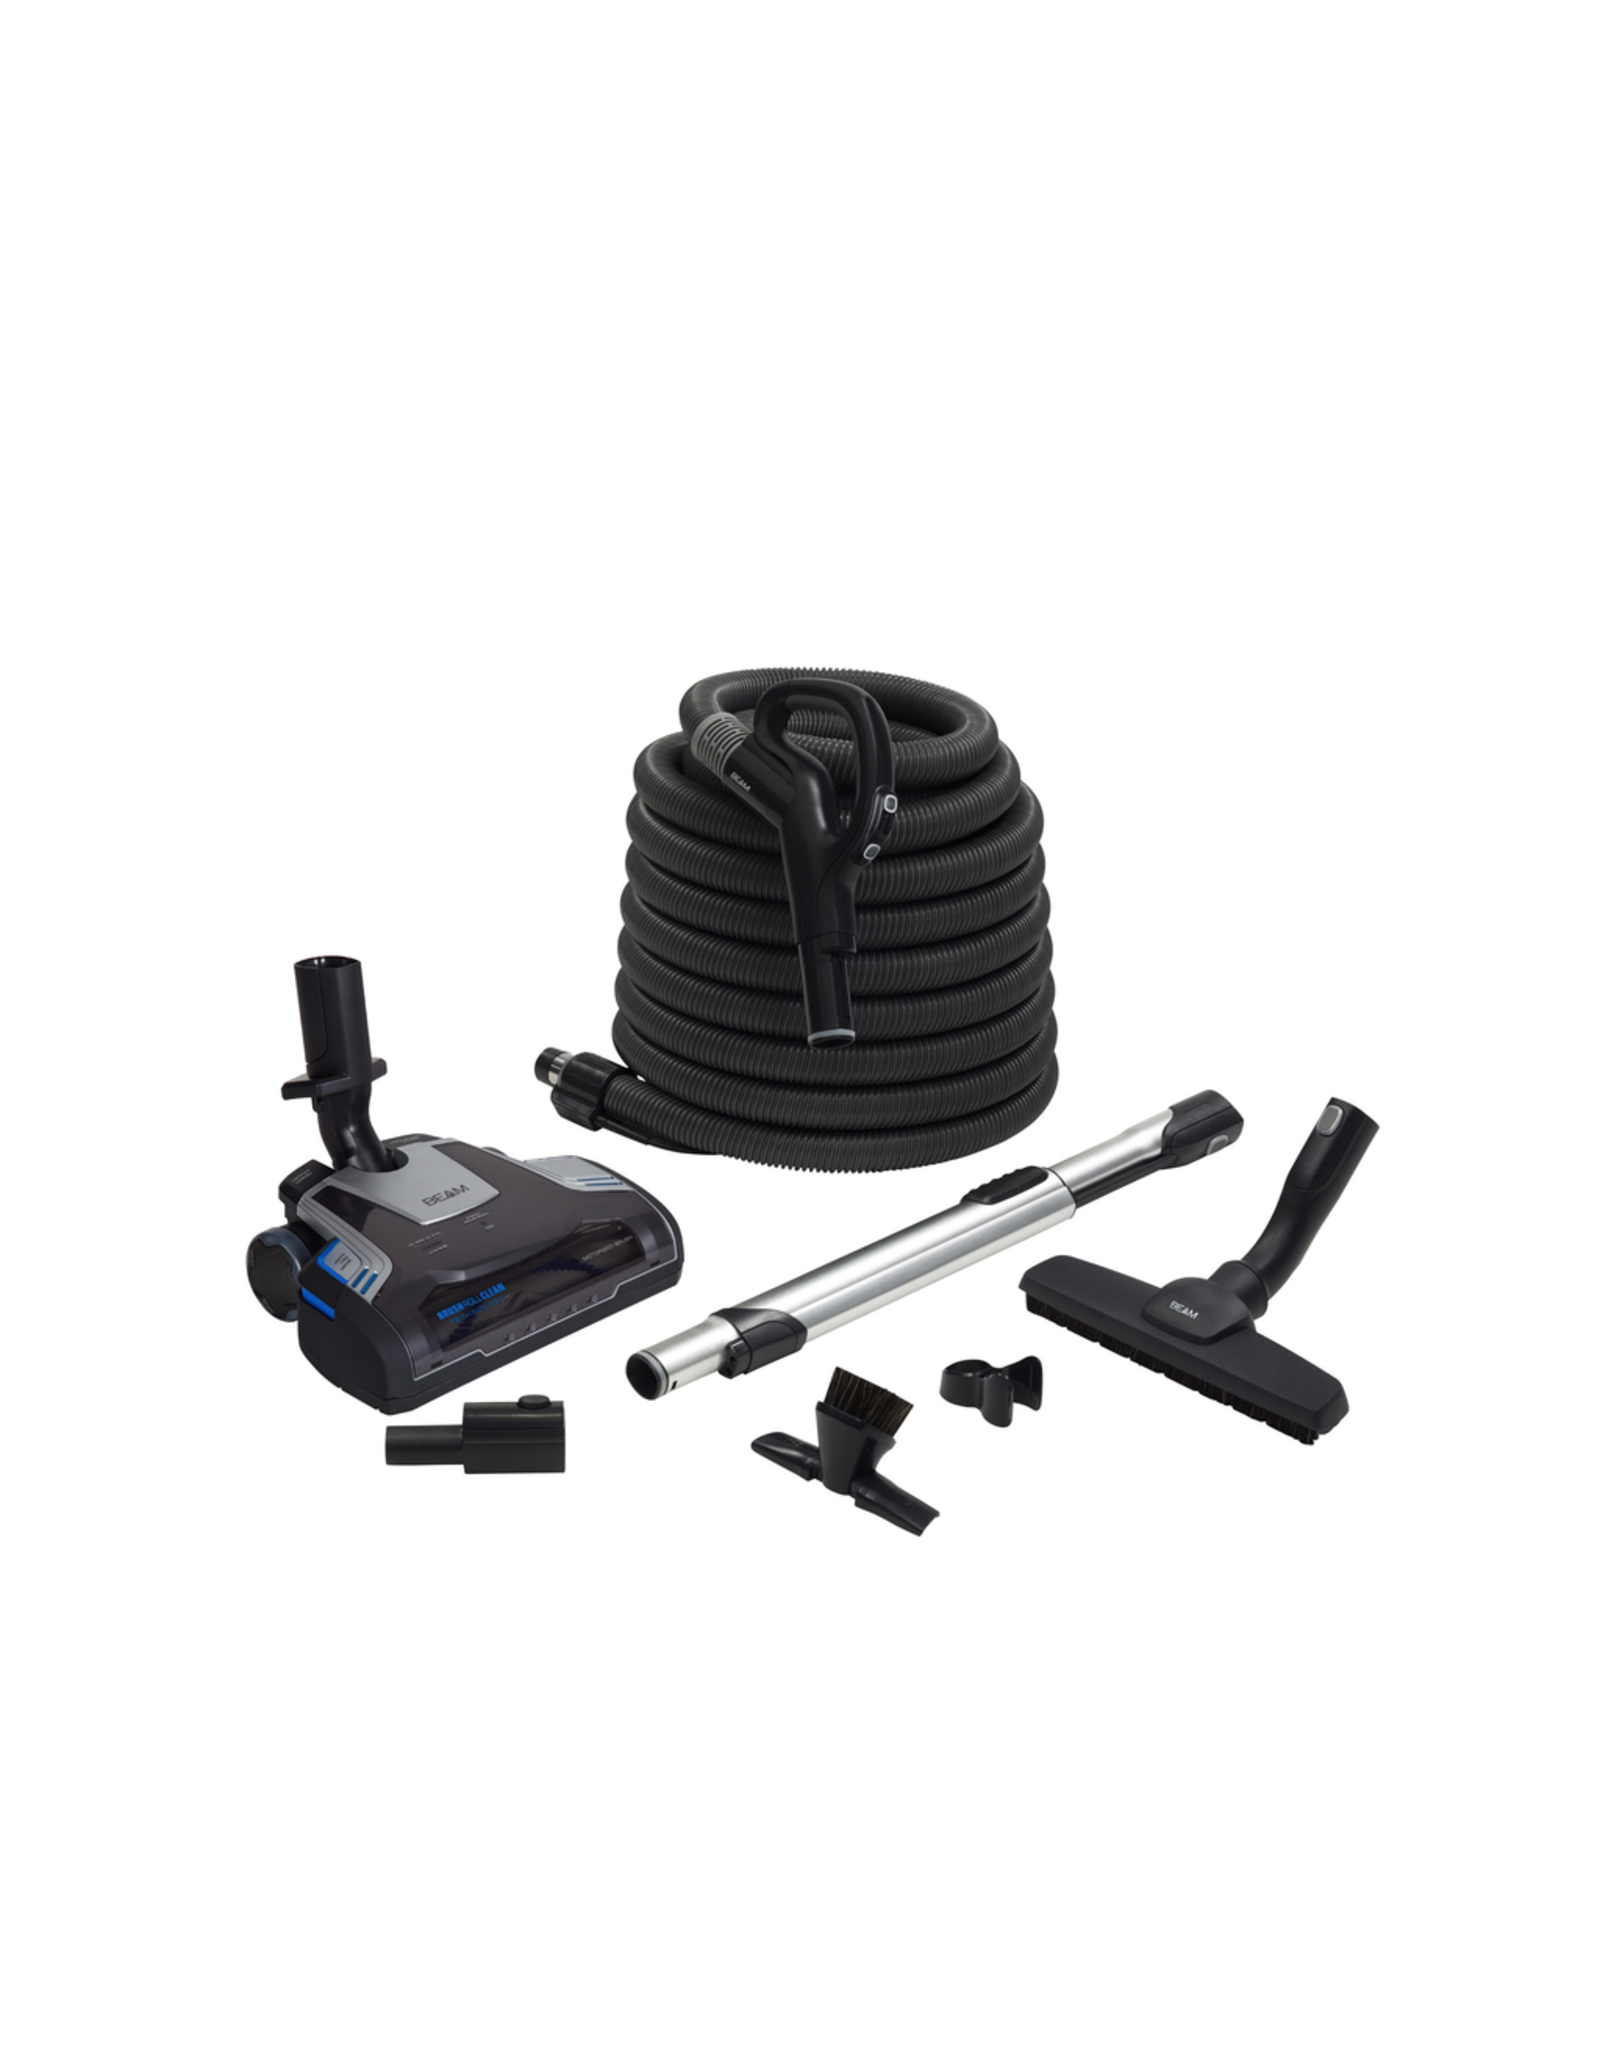 Beam Beam Precision Attachment Set with EZ Grip Handle & 35' Hose